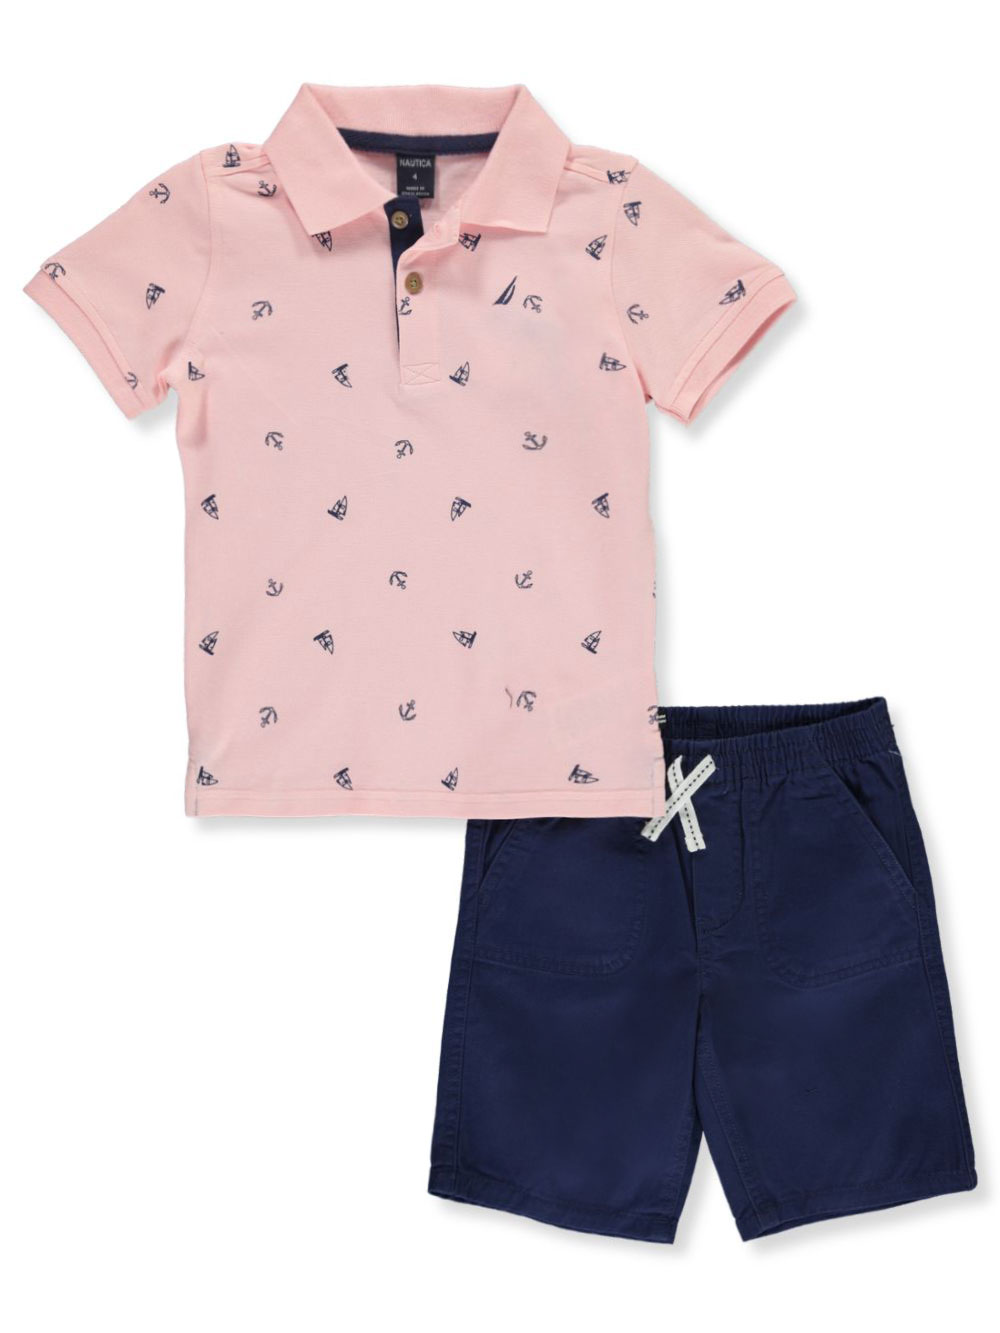 Anchors 2-Piece Shorts Set Outfit